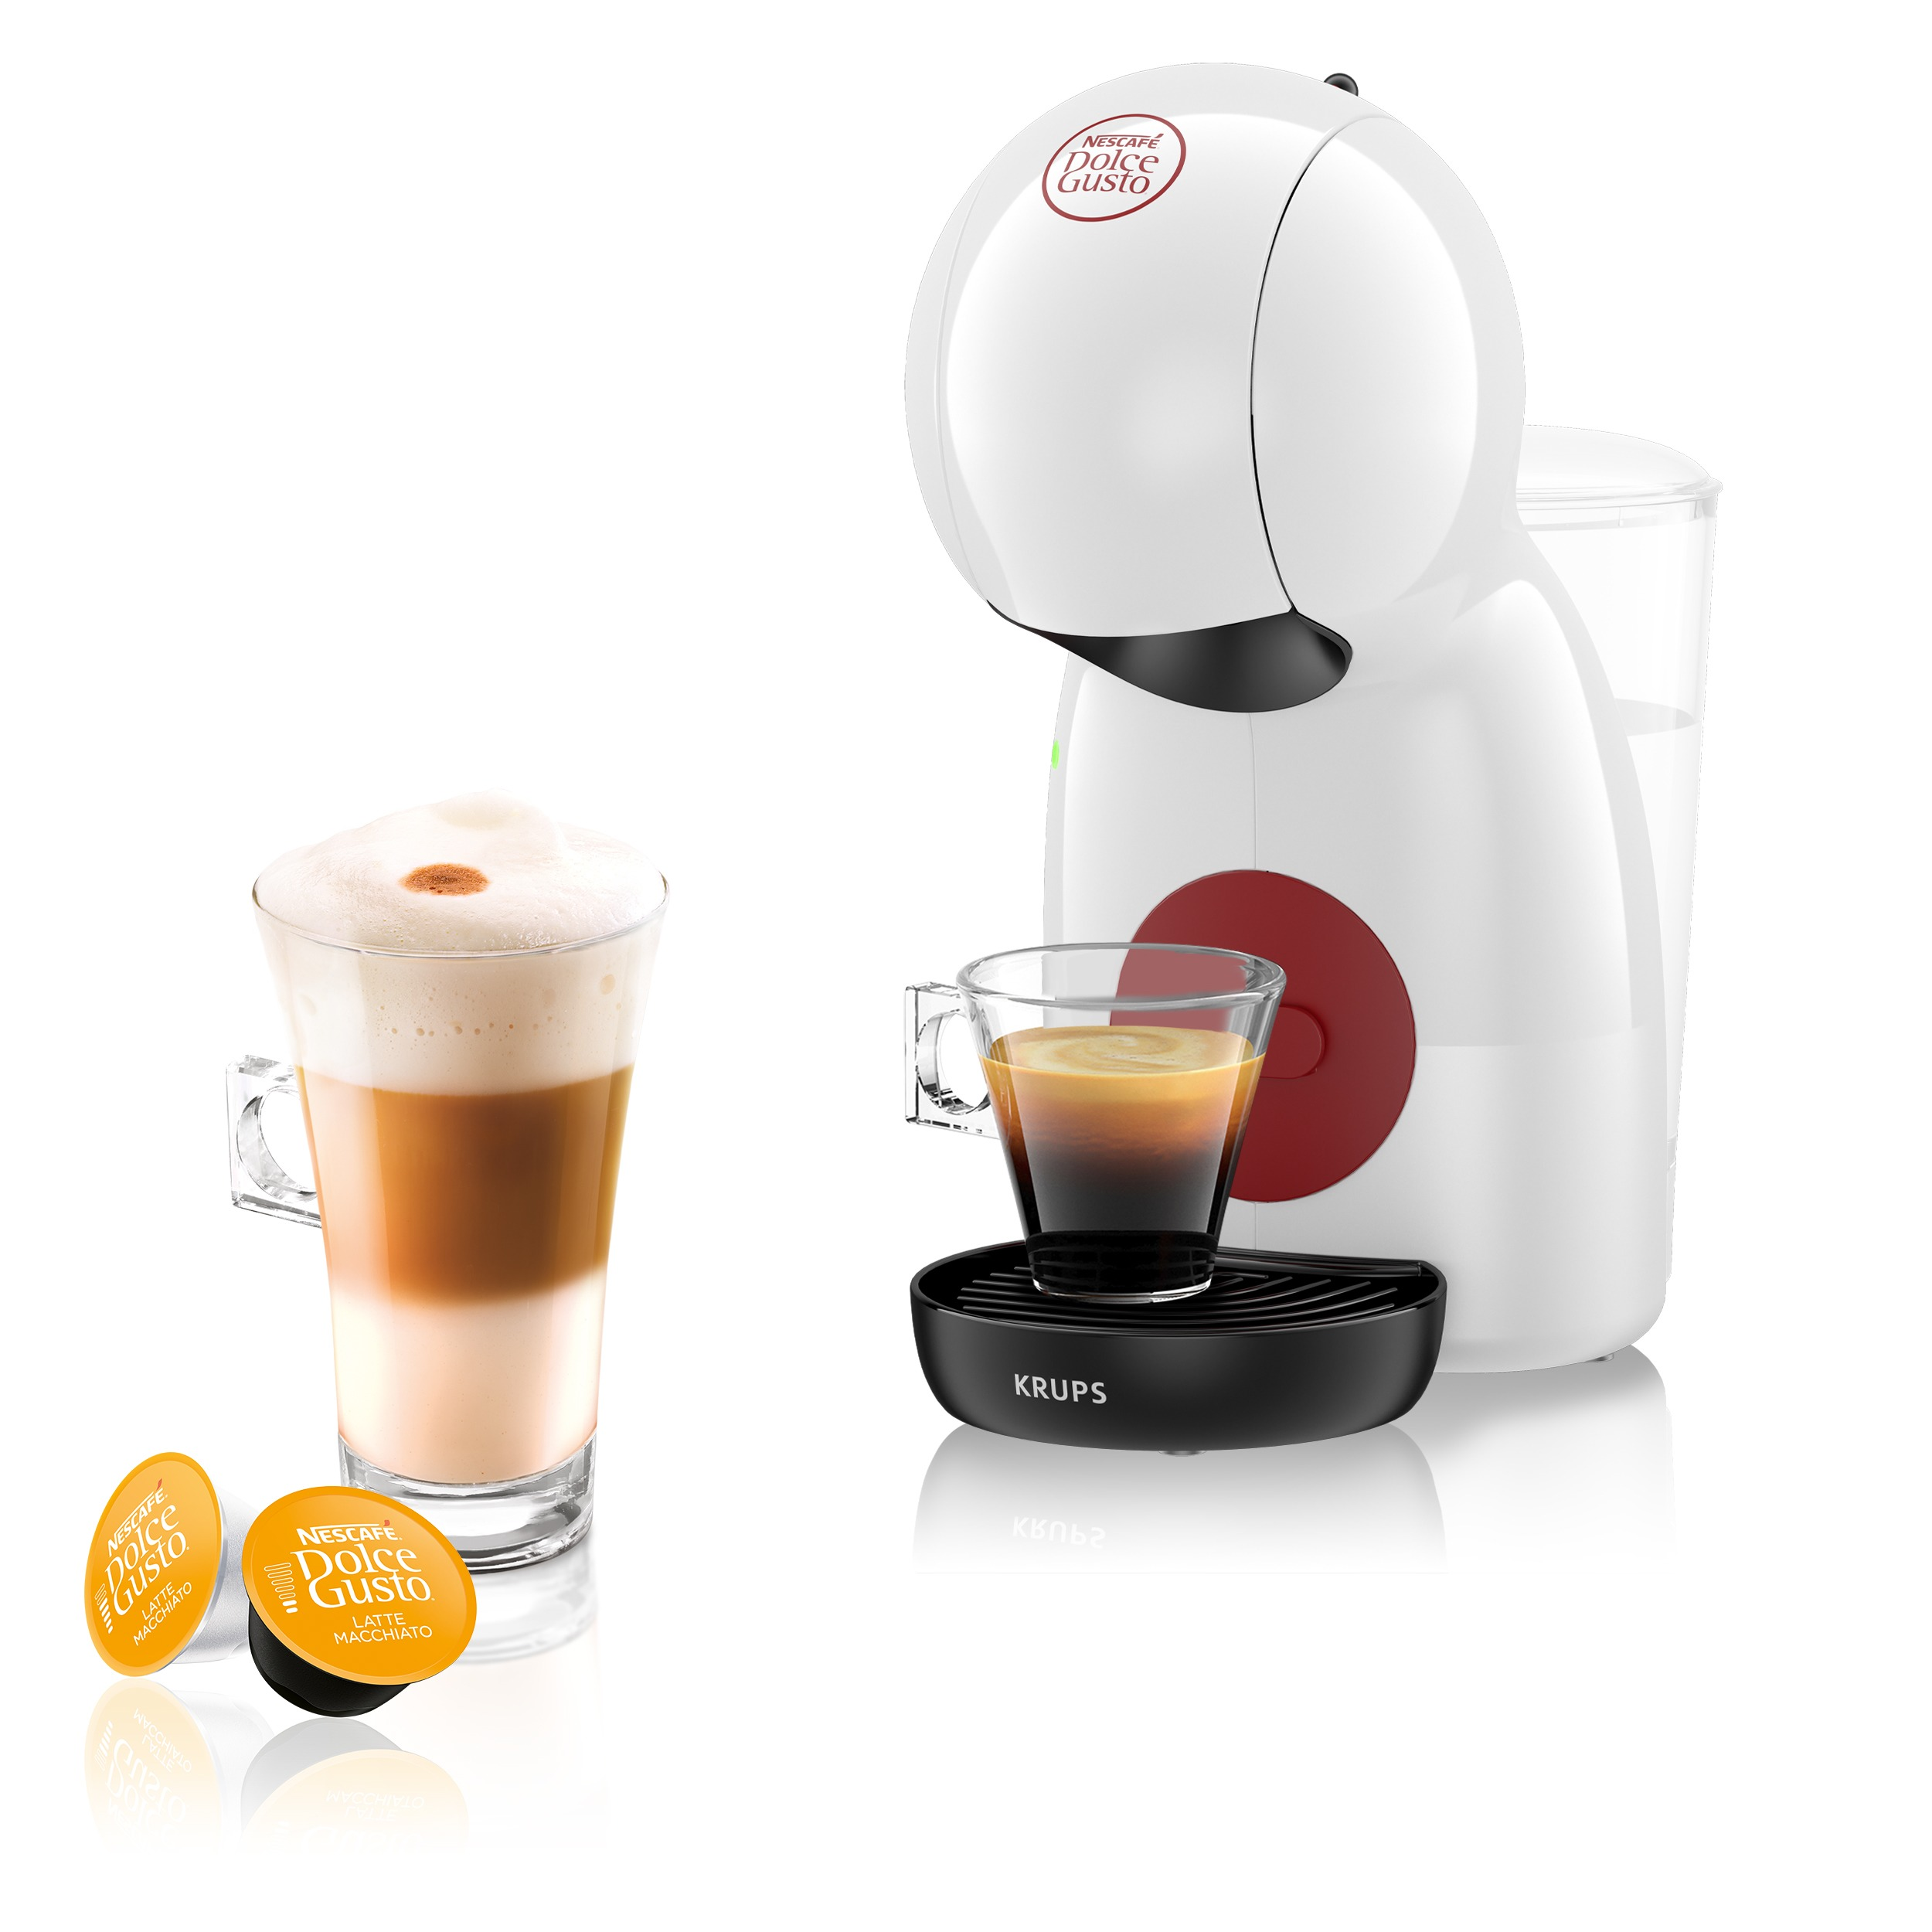 Krups KP1A01 Dolce Gusto Piccolo XS Espresso apparaat